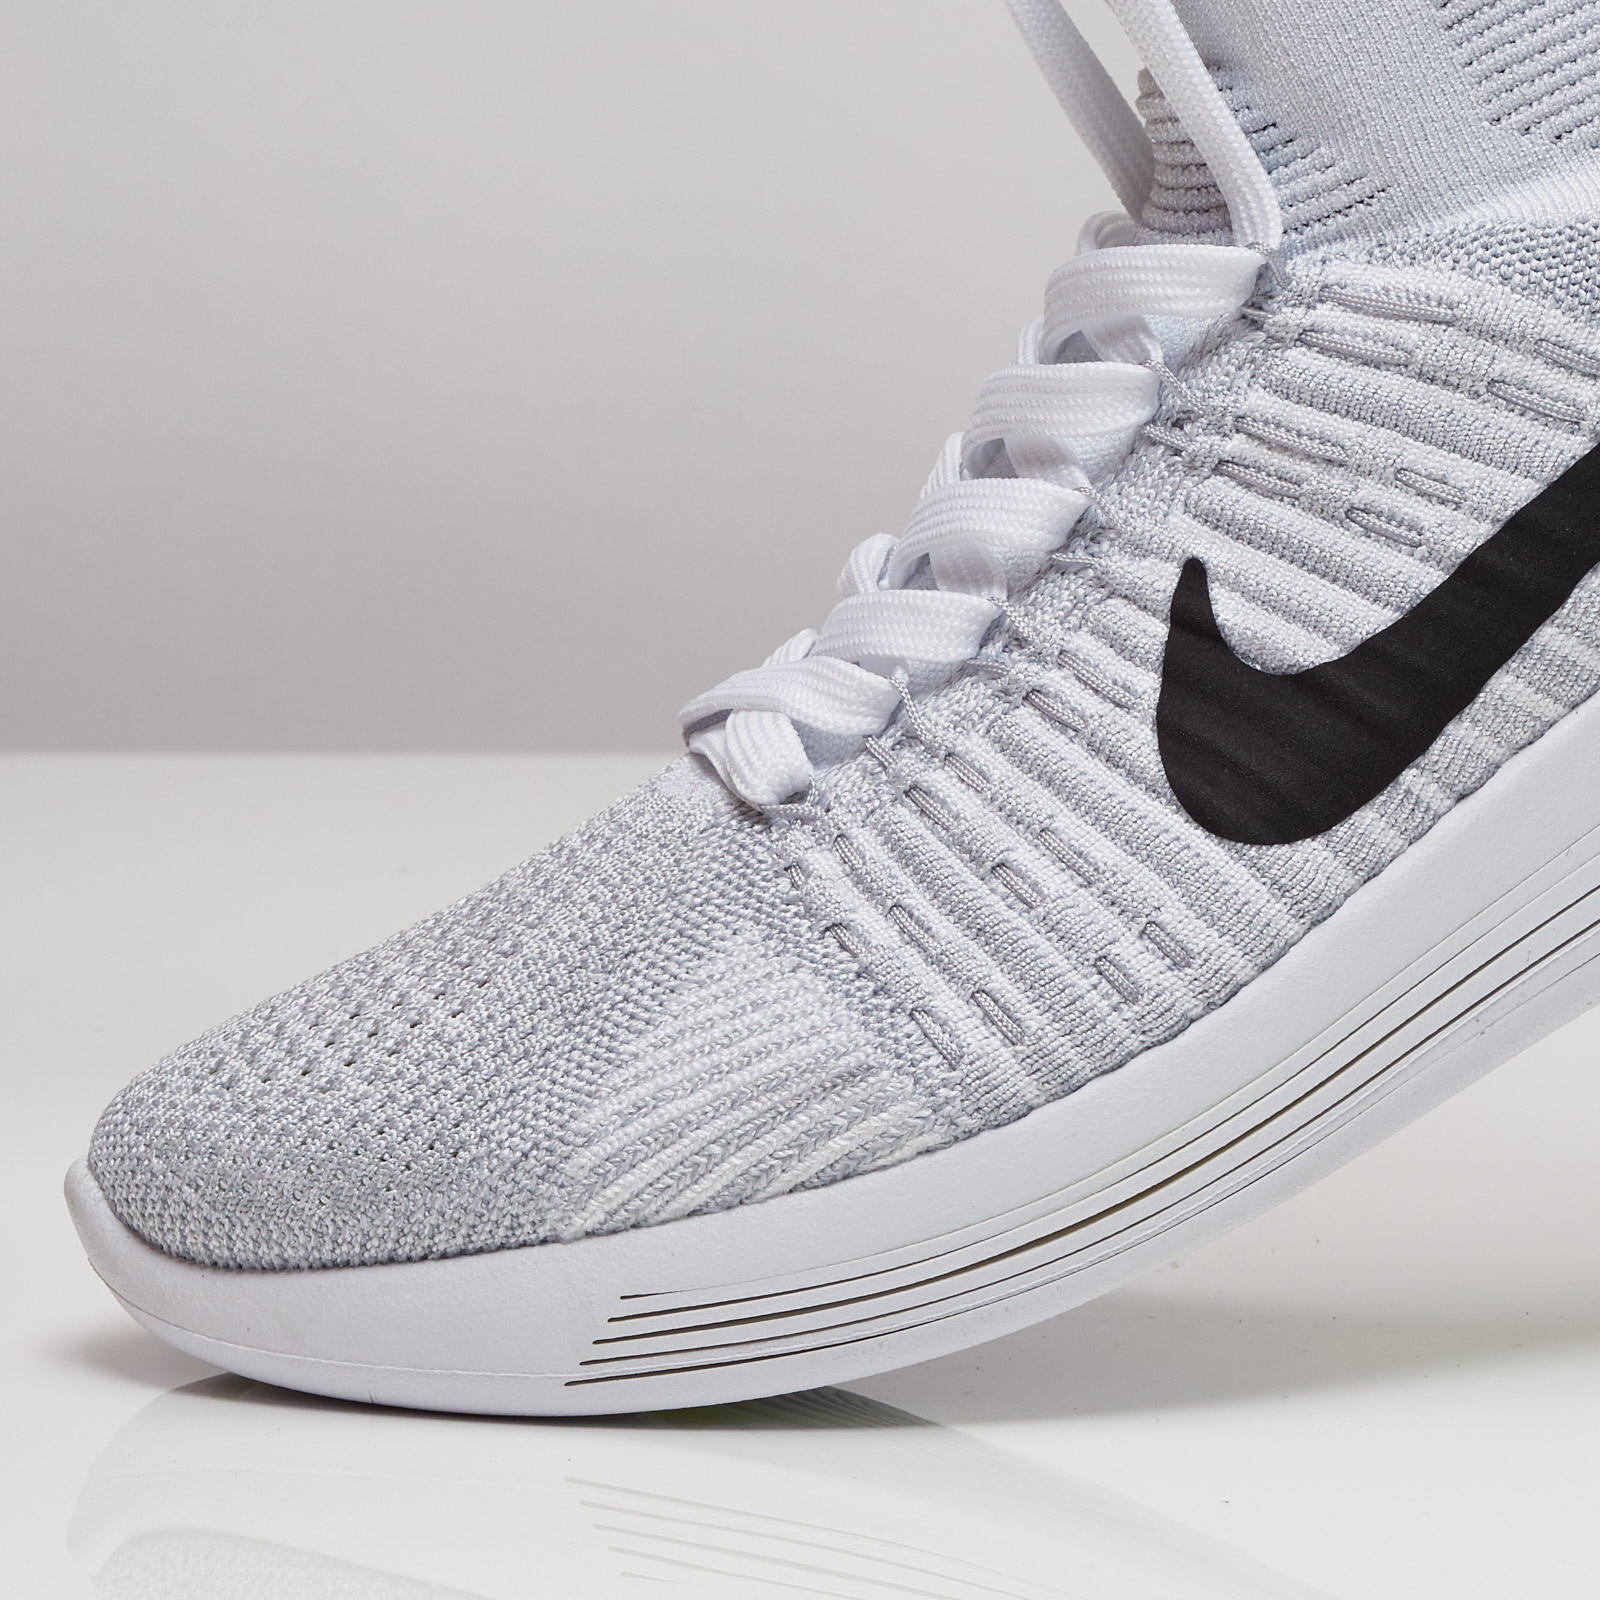 check out 26128 9cb4e Nike Lunarepic Flyknit - 818676-102 - Sneakersnstuff ...